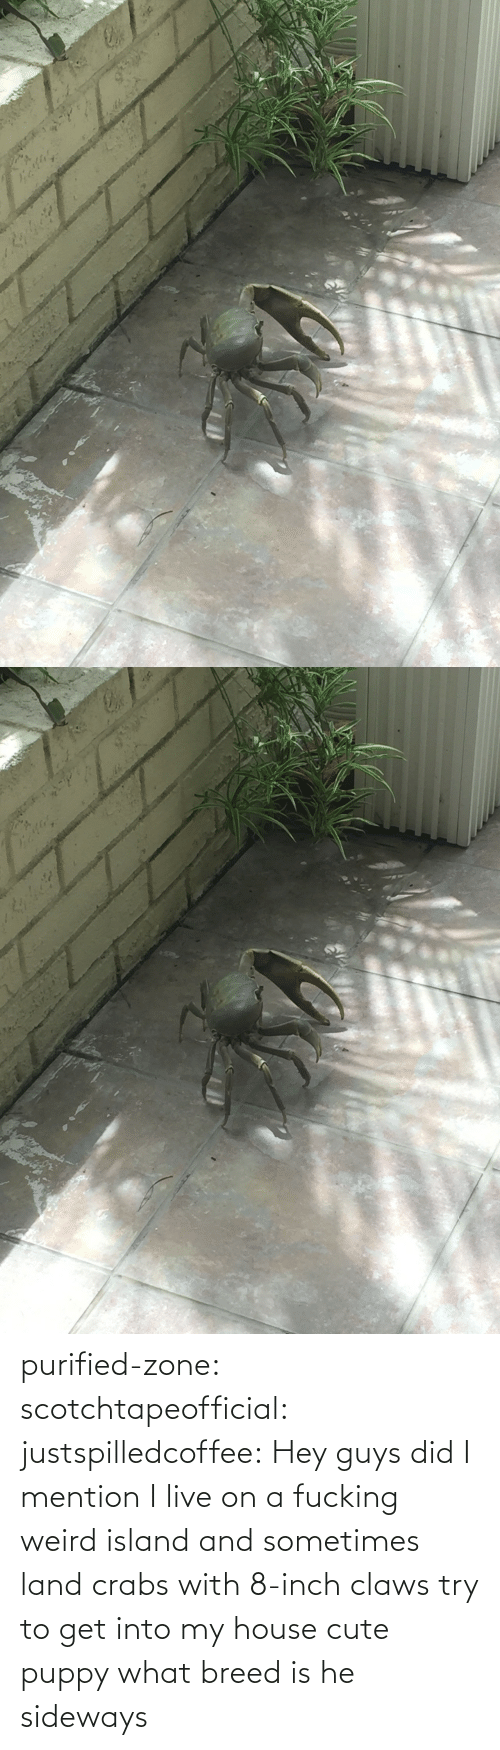 Puppy: purified-zone: scotchtapeofficial:  justspilledcoffee:  Hey guys did I mention I live on a fucking weird island and sometimes land crabs with 8-inch claws try to get into my house  cute puppy what breed is he  sideways